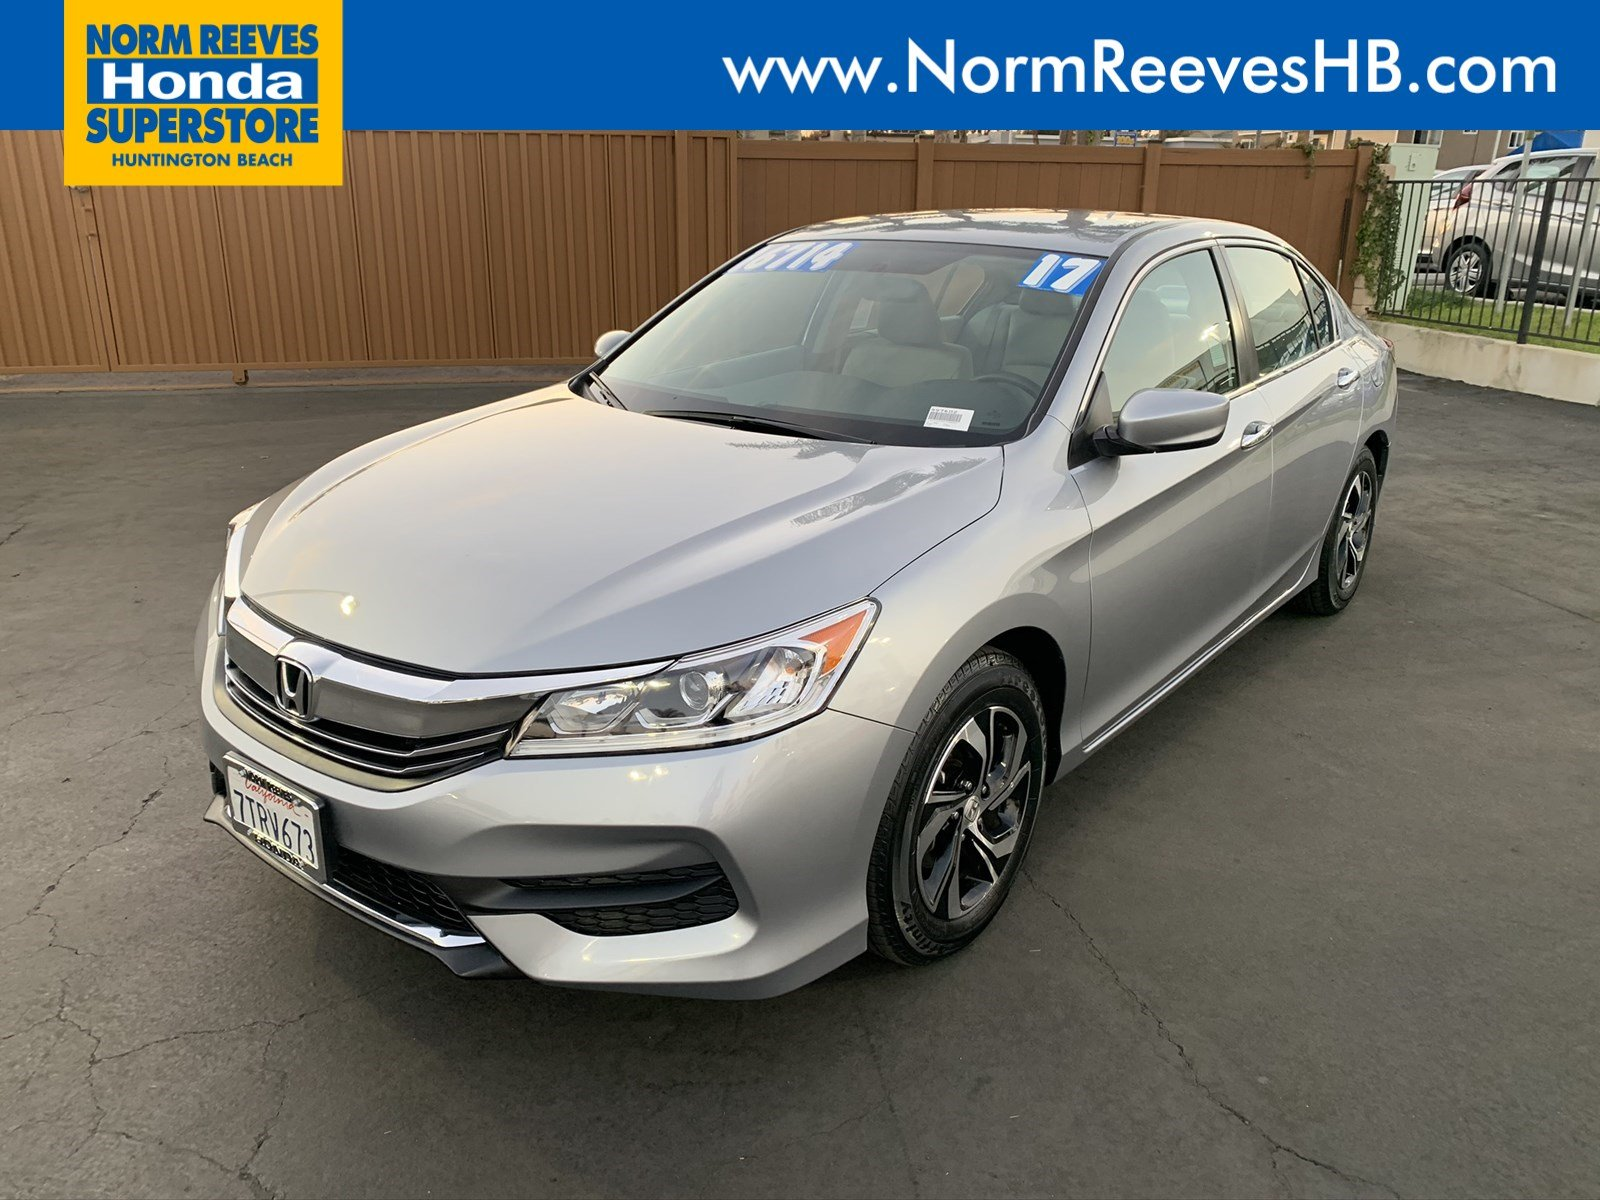 Certified Pre-Owned 2017 Honda Accord Sedan LX